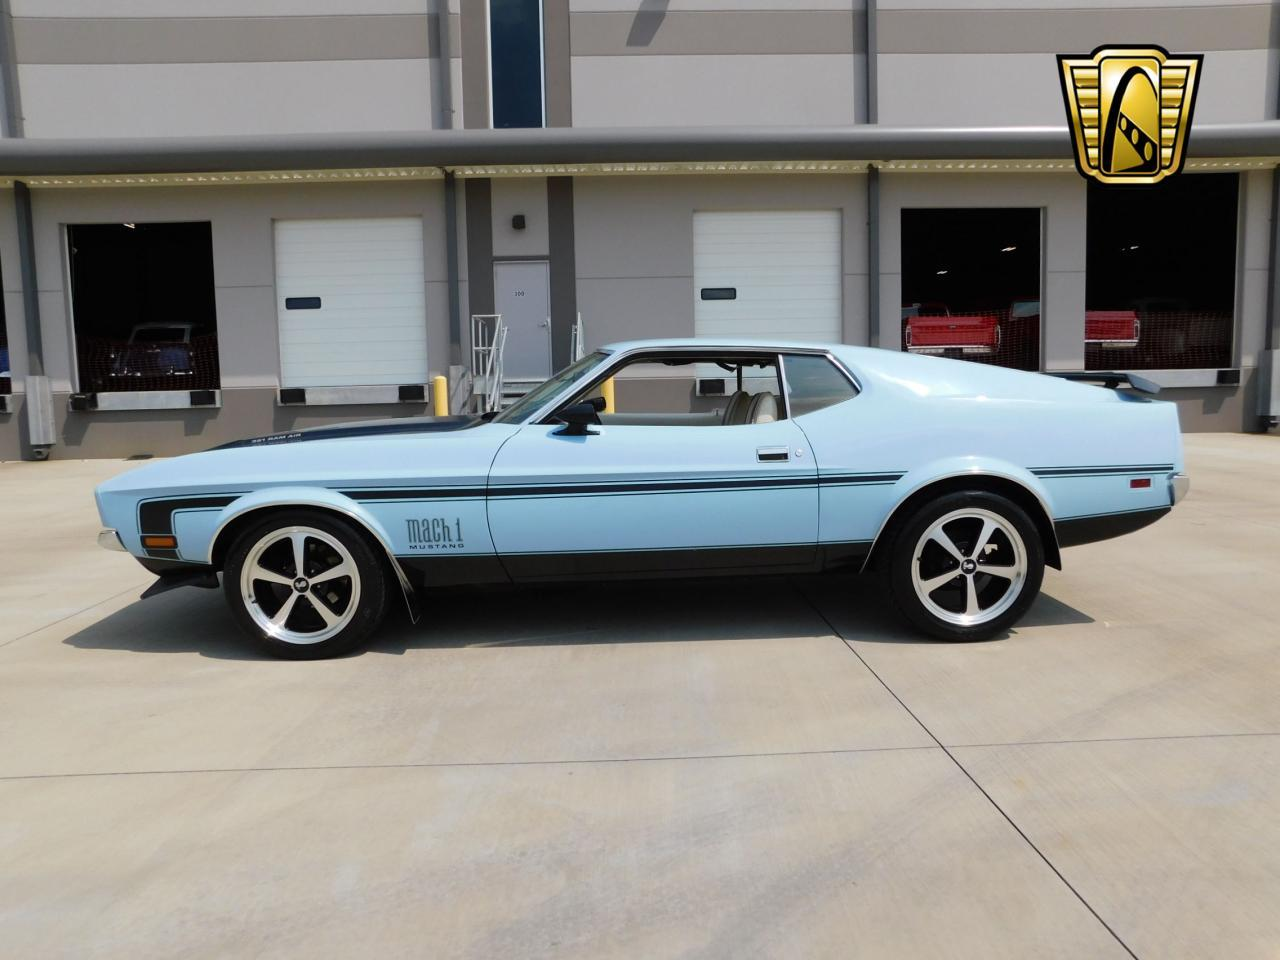 Large Picture of 1971 Ford Mustang located in Georgia - $33,995.00 Offered by Gateway Classic Cars - Atlanta - LTQ6